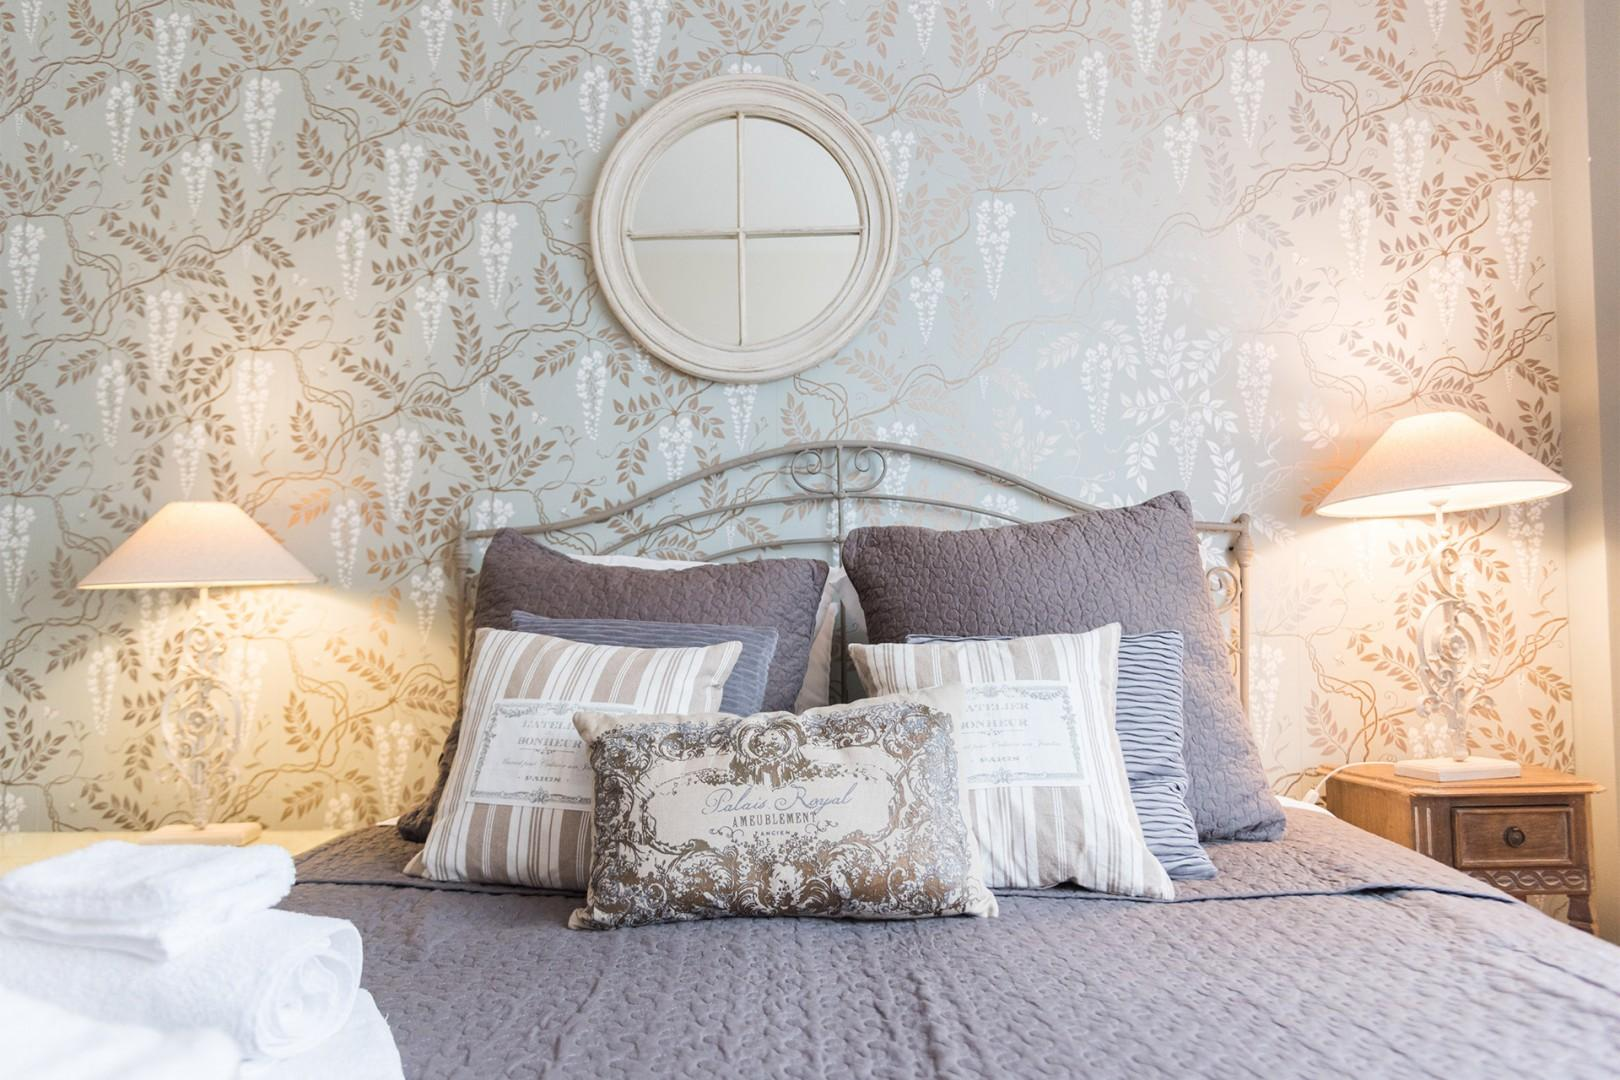 You will love the tasteful decor and French touches in the bedroom.